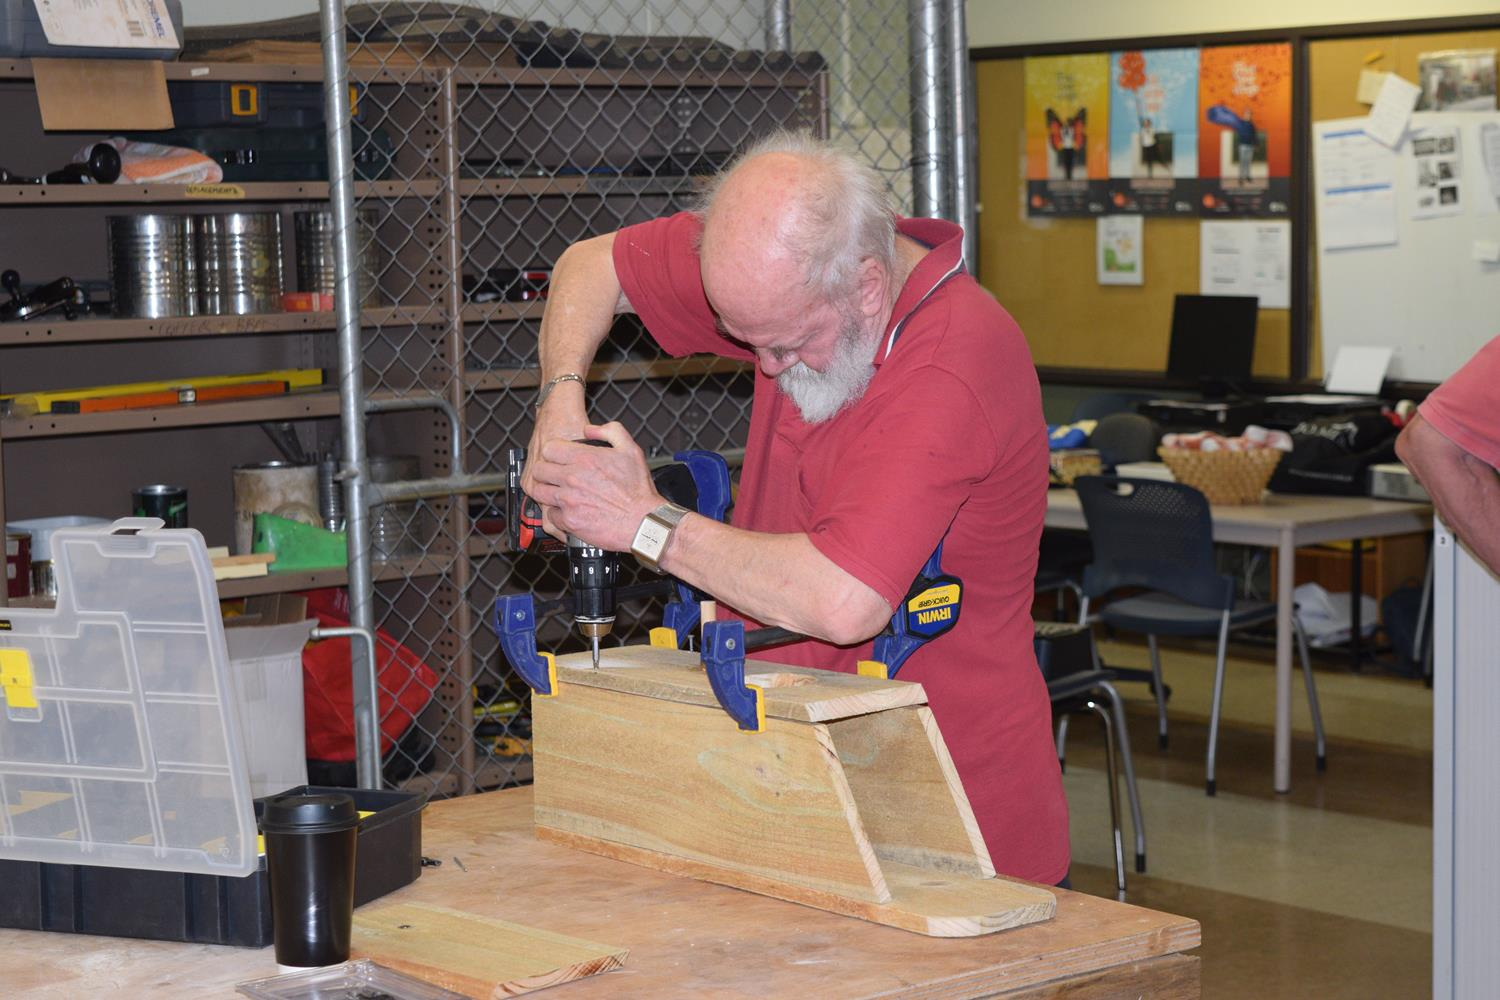 Constructing a Bird Box